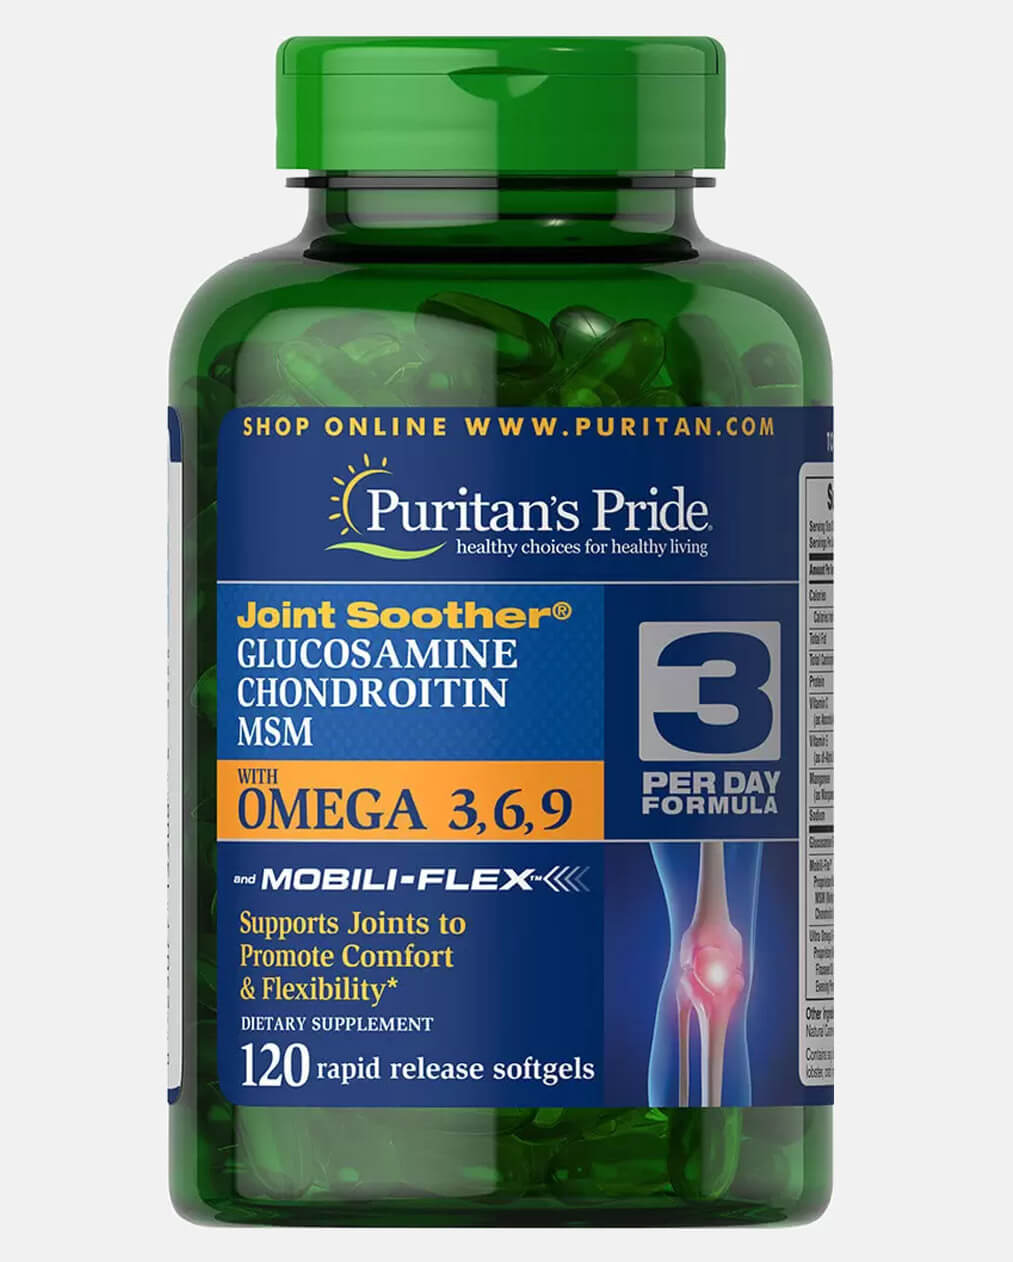 Glucosamine, Chondroitin & MSM with Omega 3, 6, 9